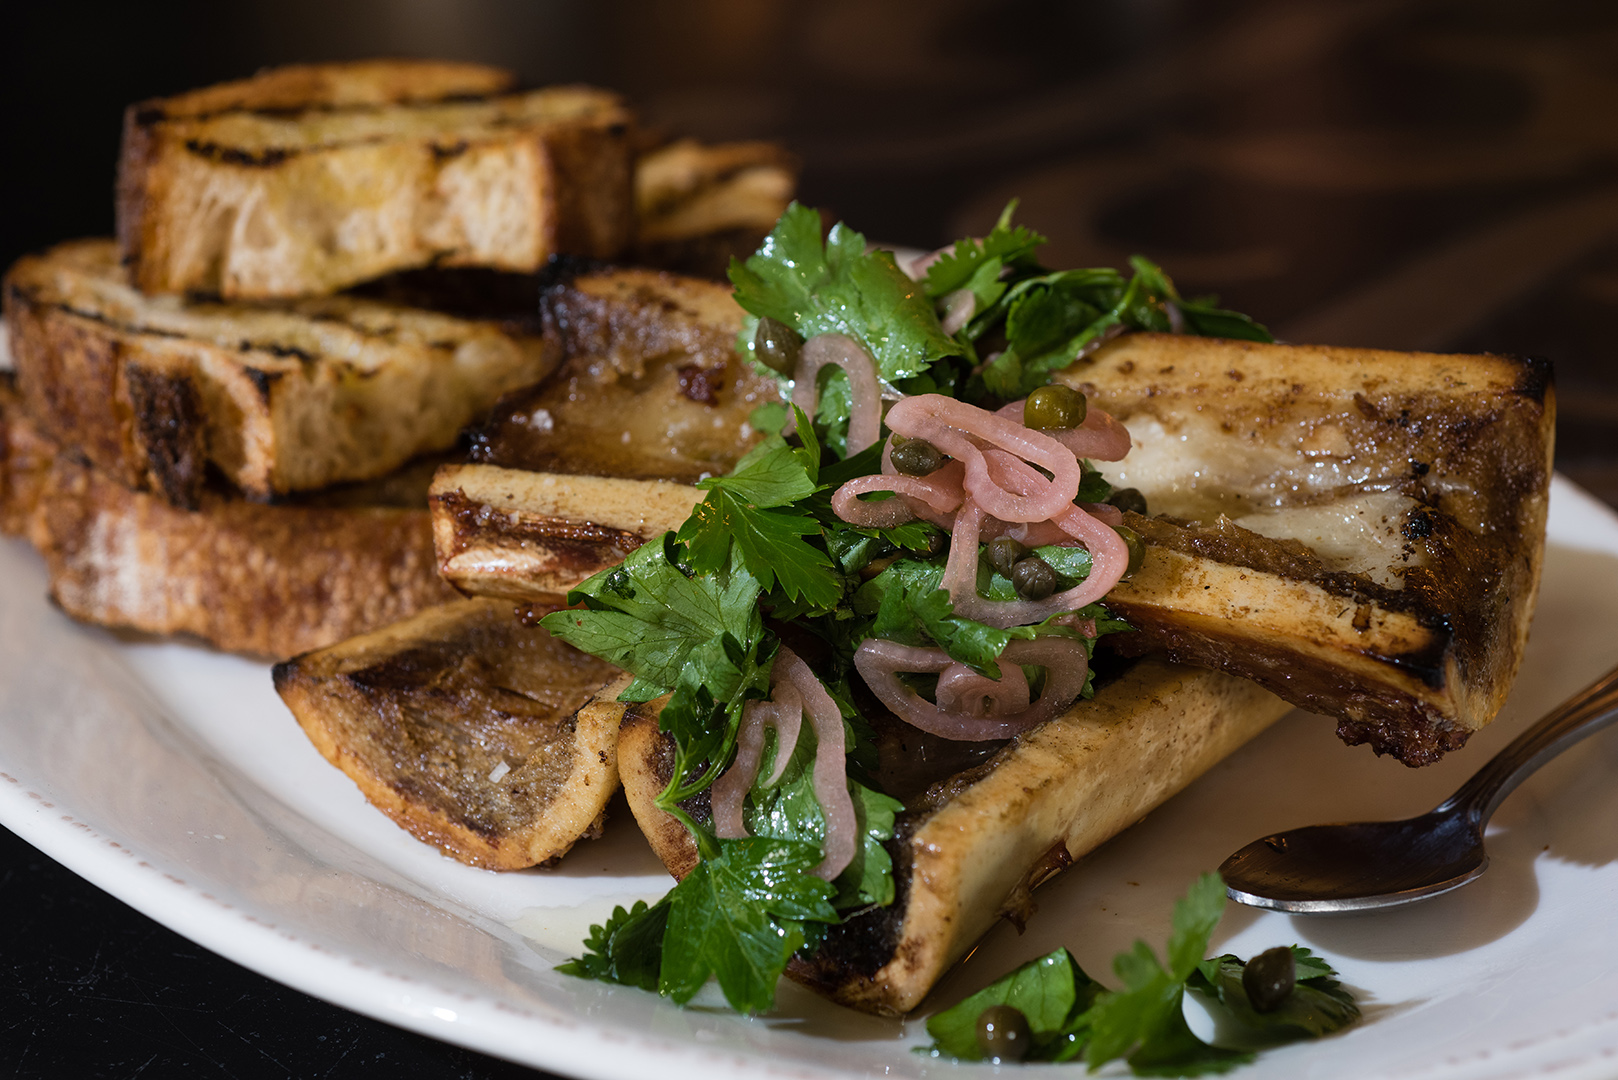 Smoked bone marrow with capers, shallots, herbs and crispy grilled bread. (Dustin Franz/The Washington Post)